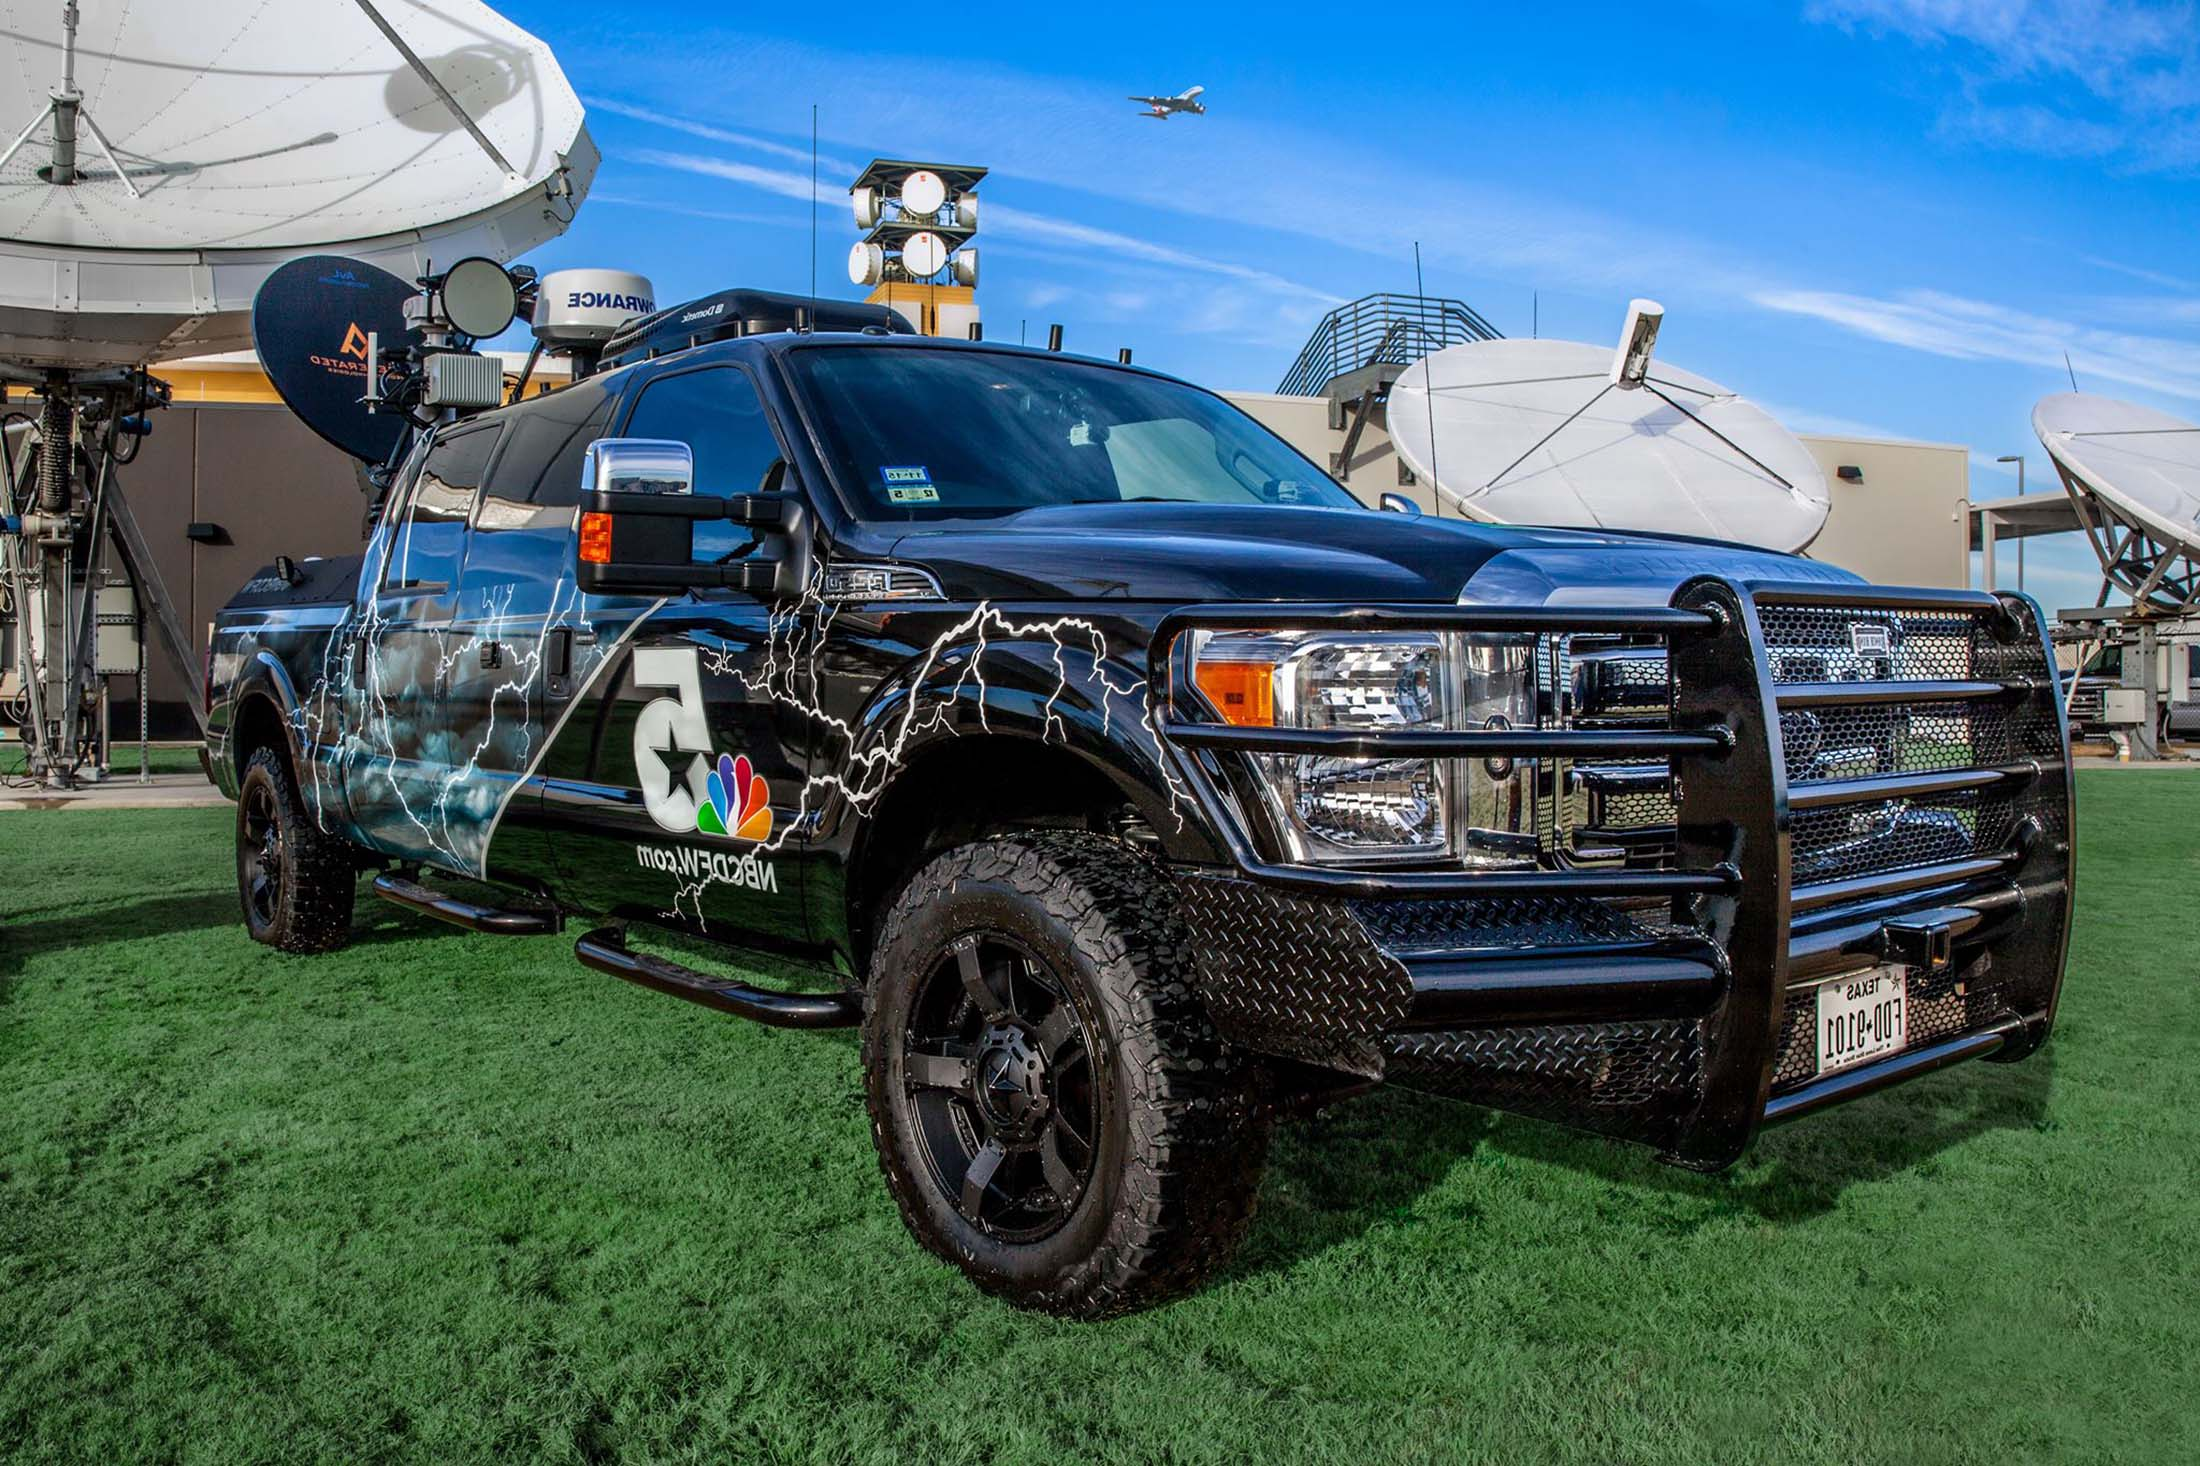 Thunder Truck TX NBC 5 Dallas